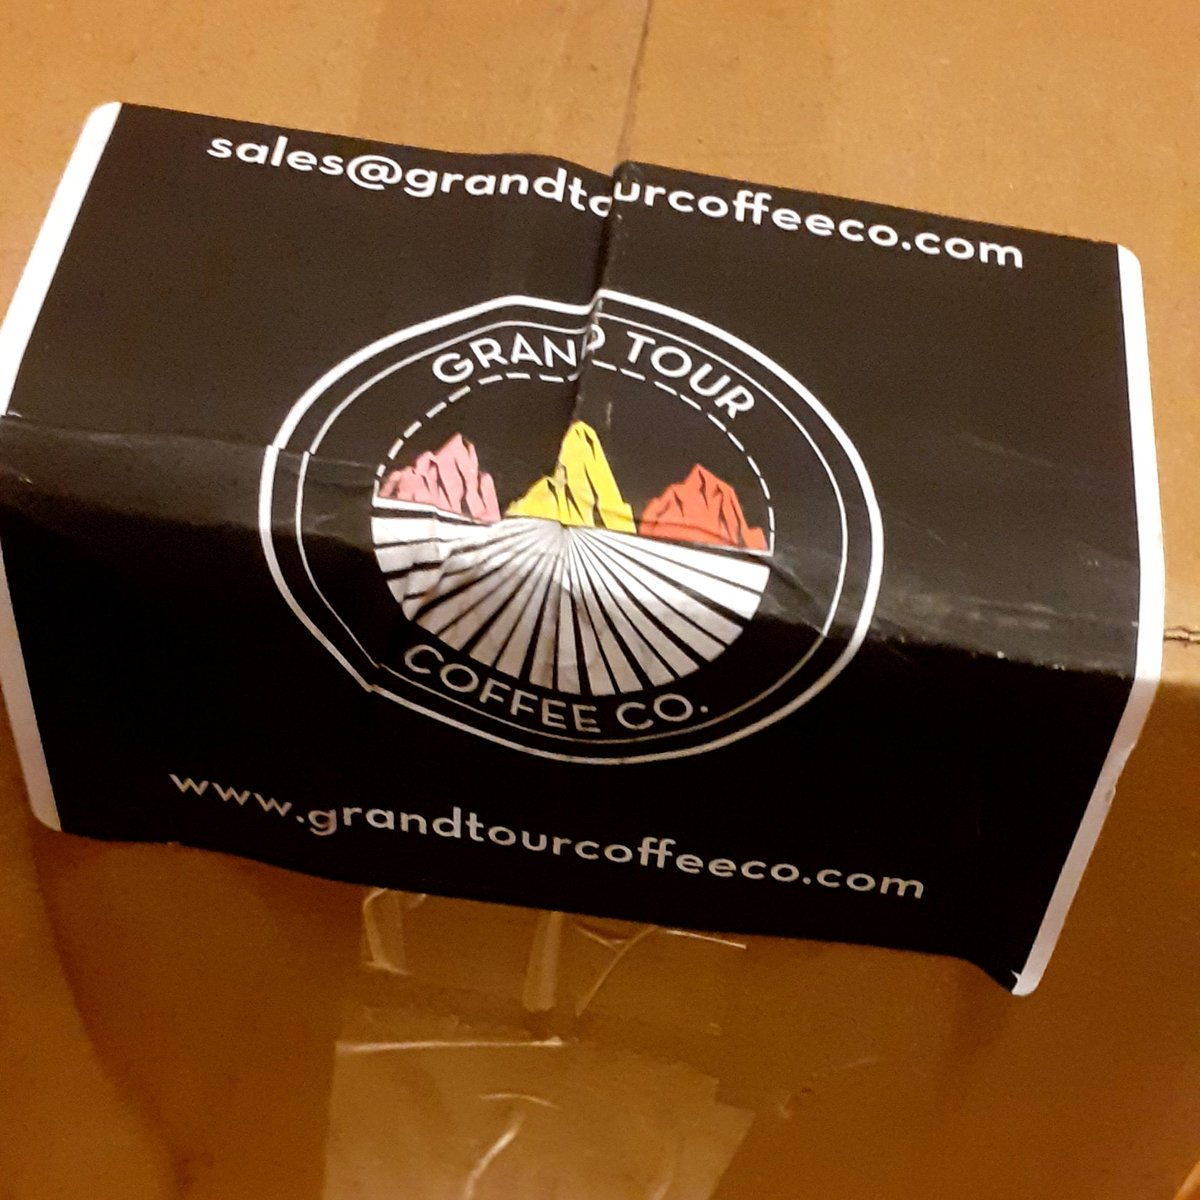 Speedy delivery from @GrandTourCoffee 🤩 Have to hide it from the furry fans 😅🐻🐻 #coffeelovers #Coffee #cyclinglife #cyclingcoffee #fortherideforthejourney https://t.co/I4nMgkfrqy